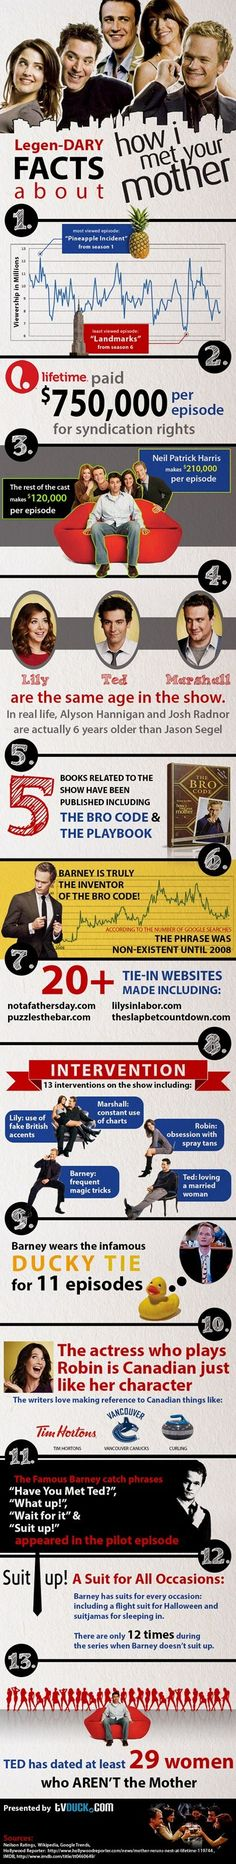 HIMYM infographic. Just so you know @Jenessa . Billson @Brittany Horton Willging Dean